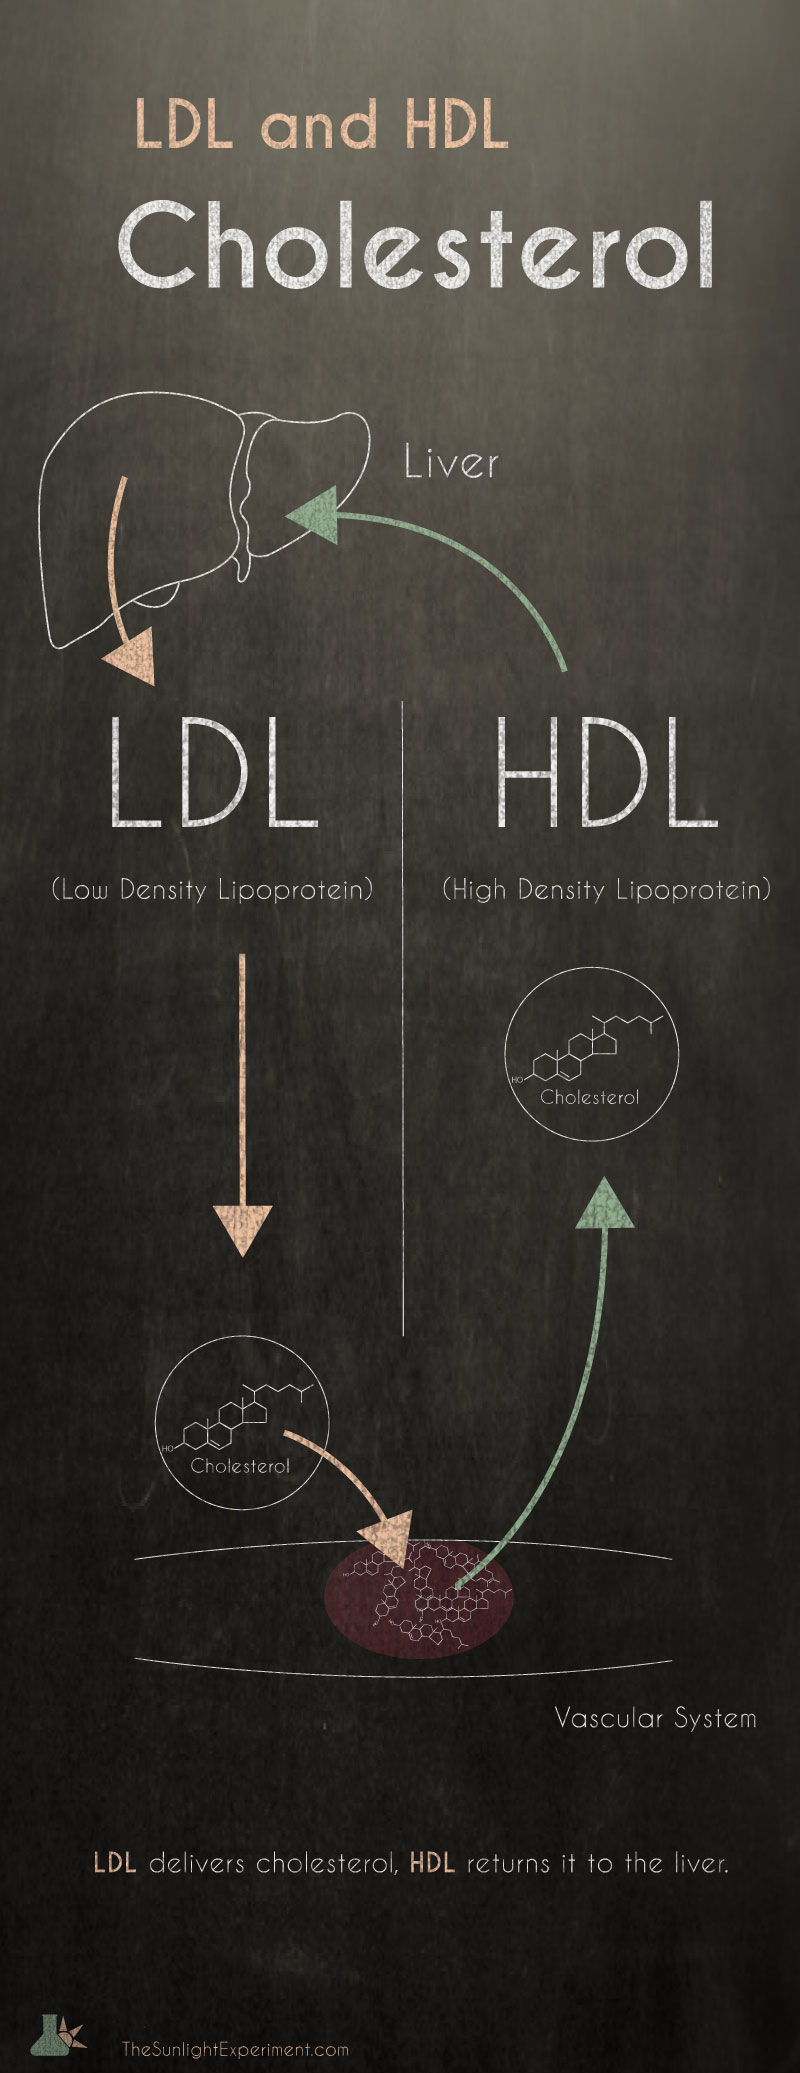 LDL and HDL cholesterol infographic